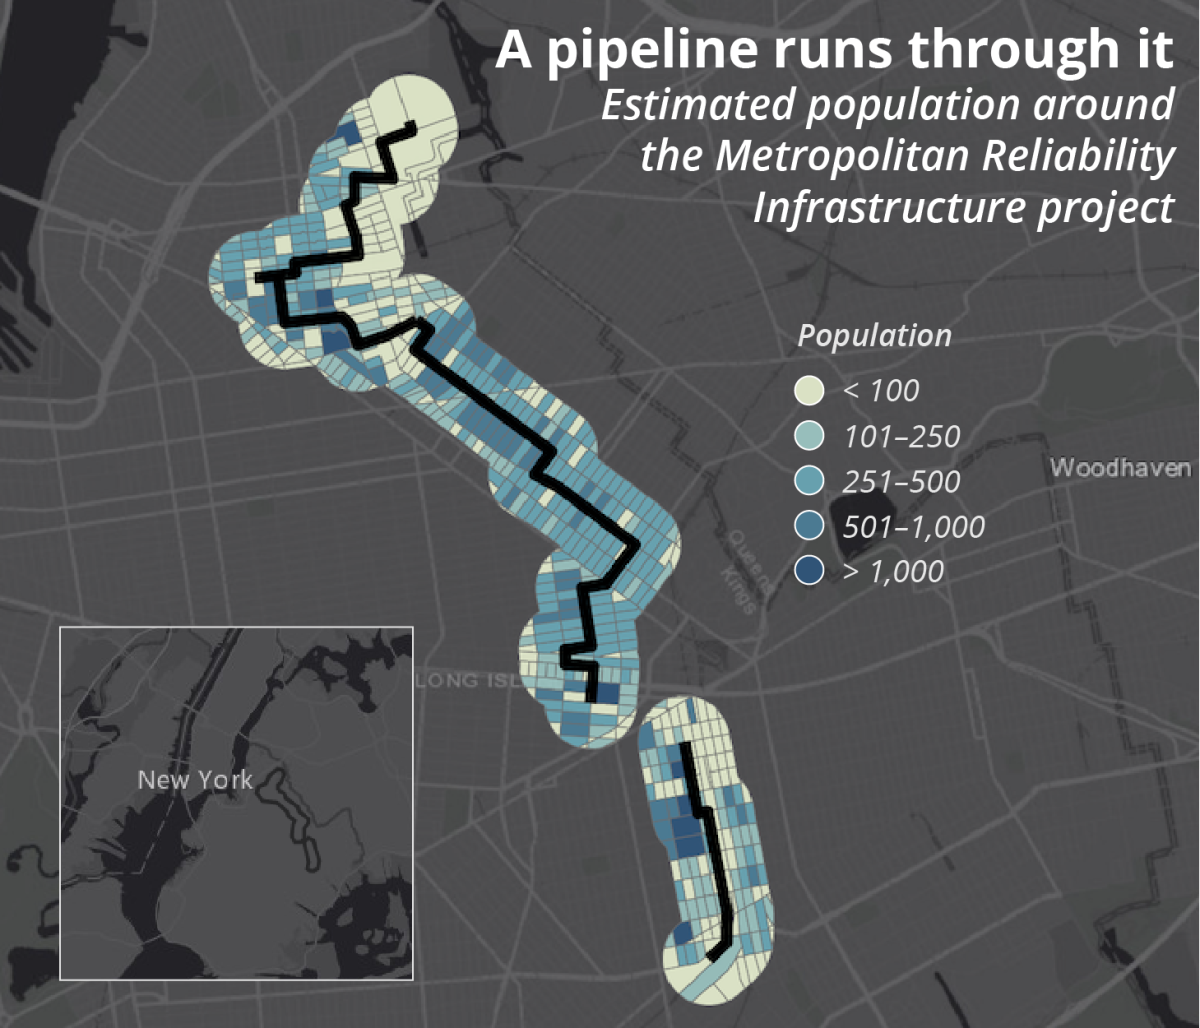 A map showing estimated population around the Metropolitan Reliability Infrastructure pipeline project in Brooklyn, New York. The corridor is densely populated.